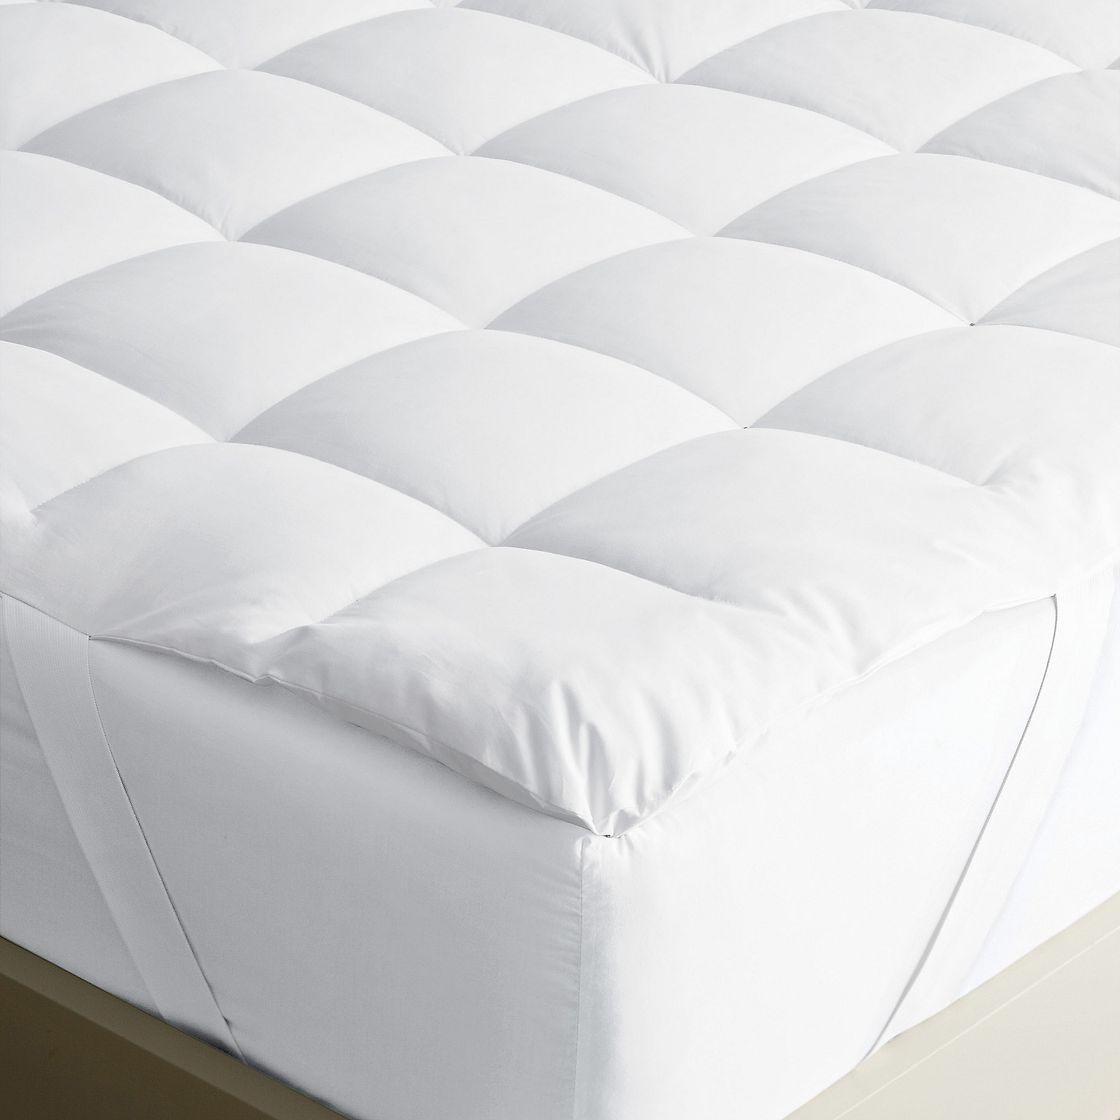 LoftAIRE Reversible Mattress Topper